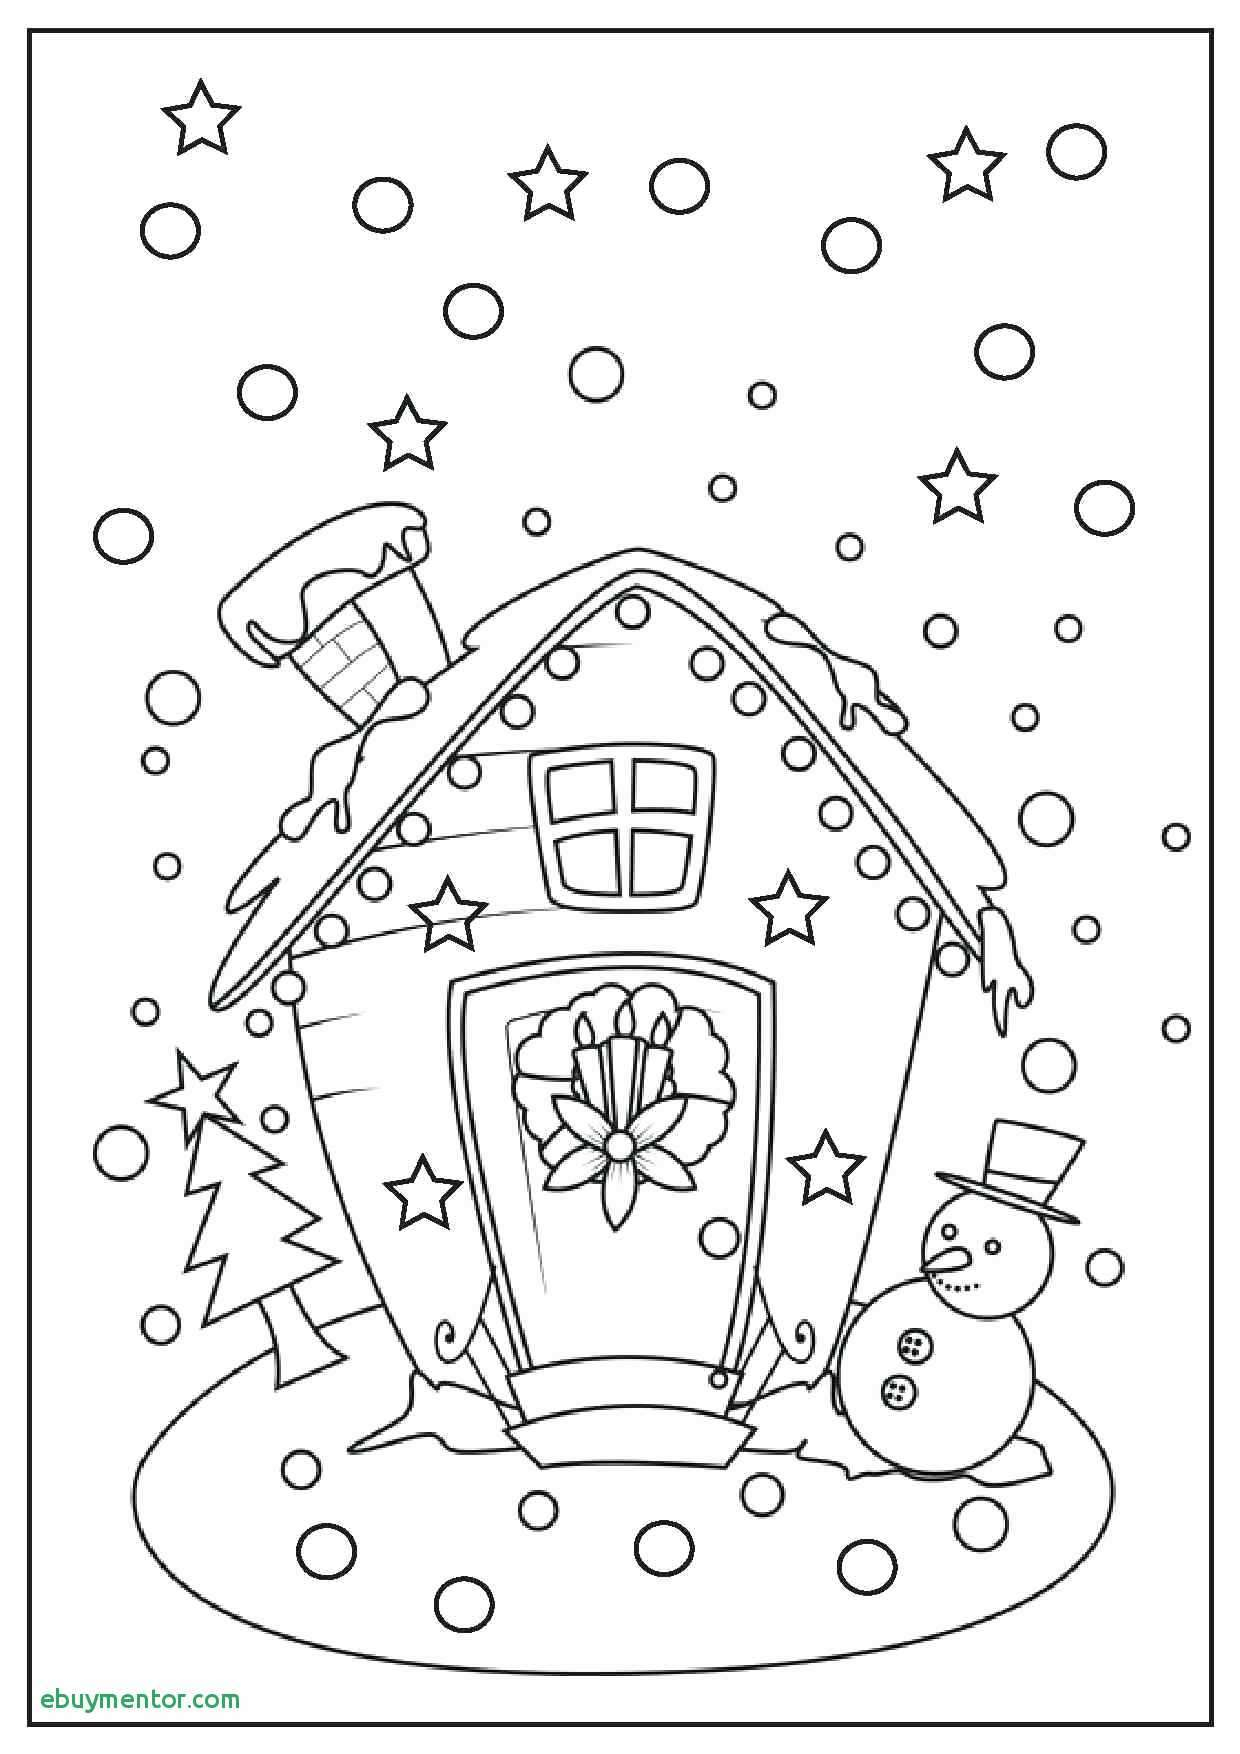 Crayola Coloring Pages to Print | Free Coloring Sheets